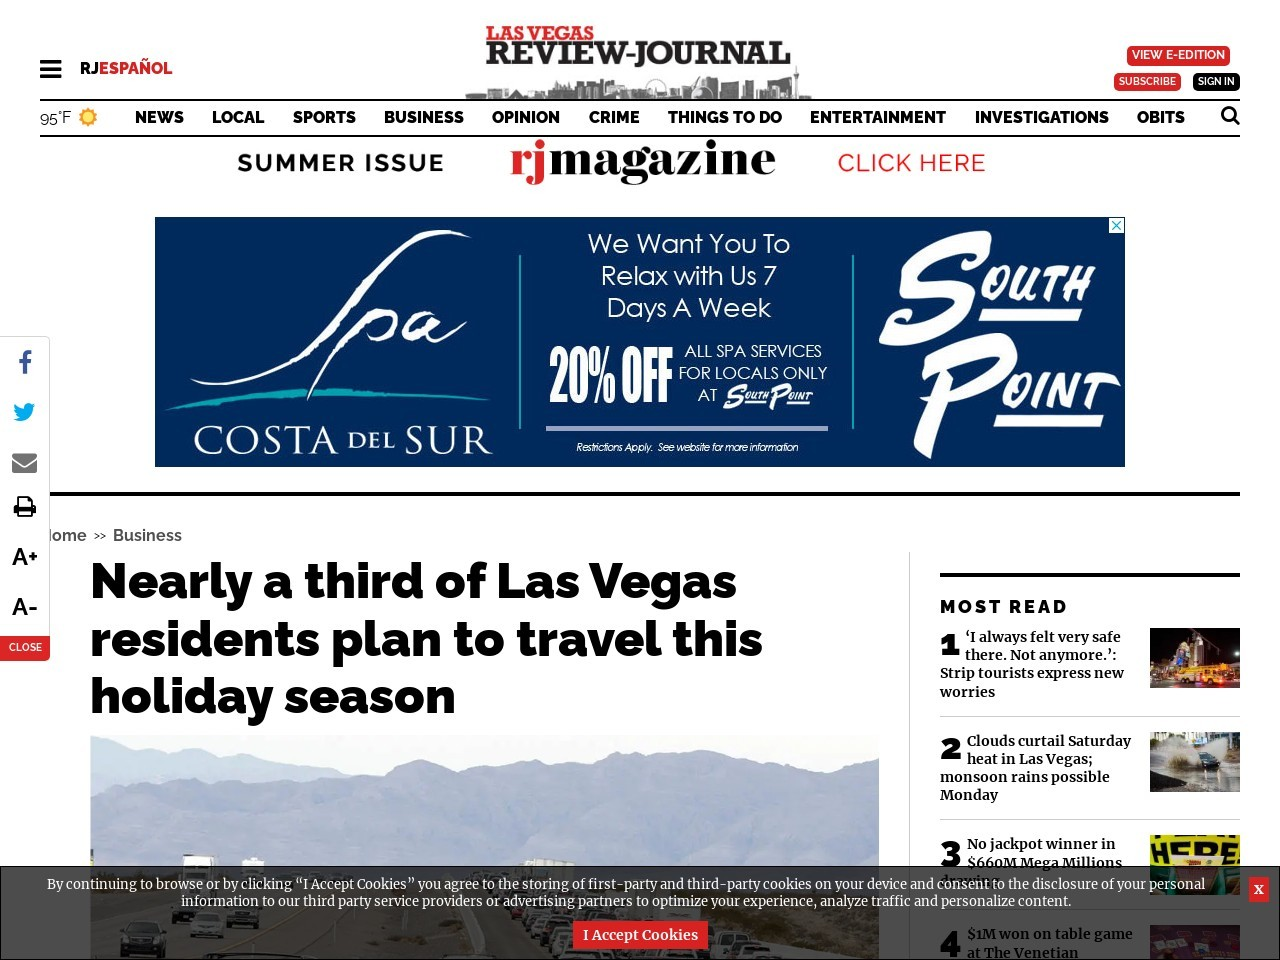 Nearly a third of Las Vegas residents plan to travel this holiday season